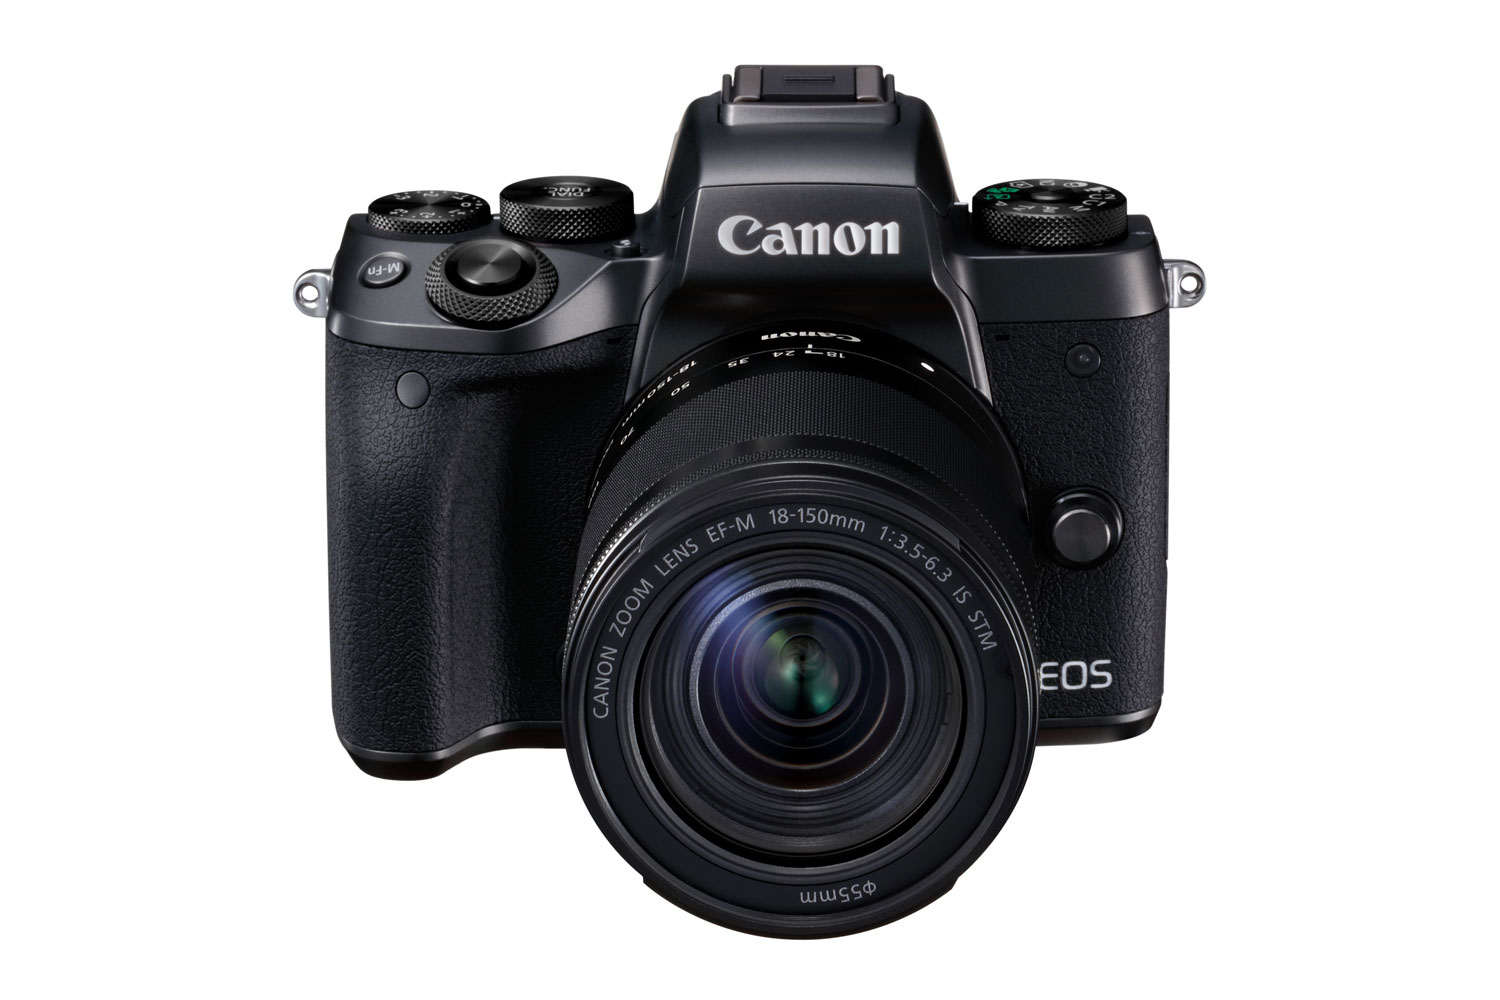 Compact Cameras for Travel Photography – Part 1: The Canon EOS M5 2